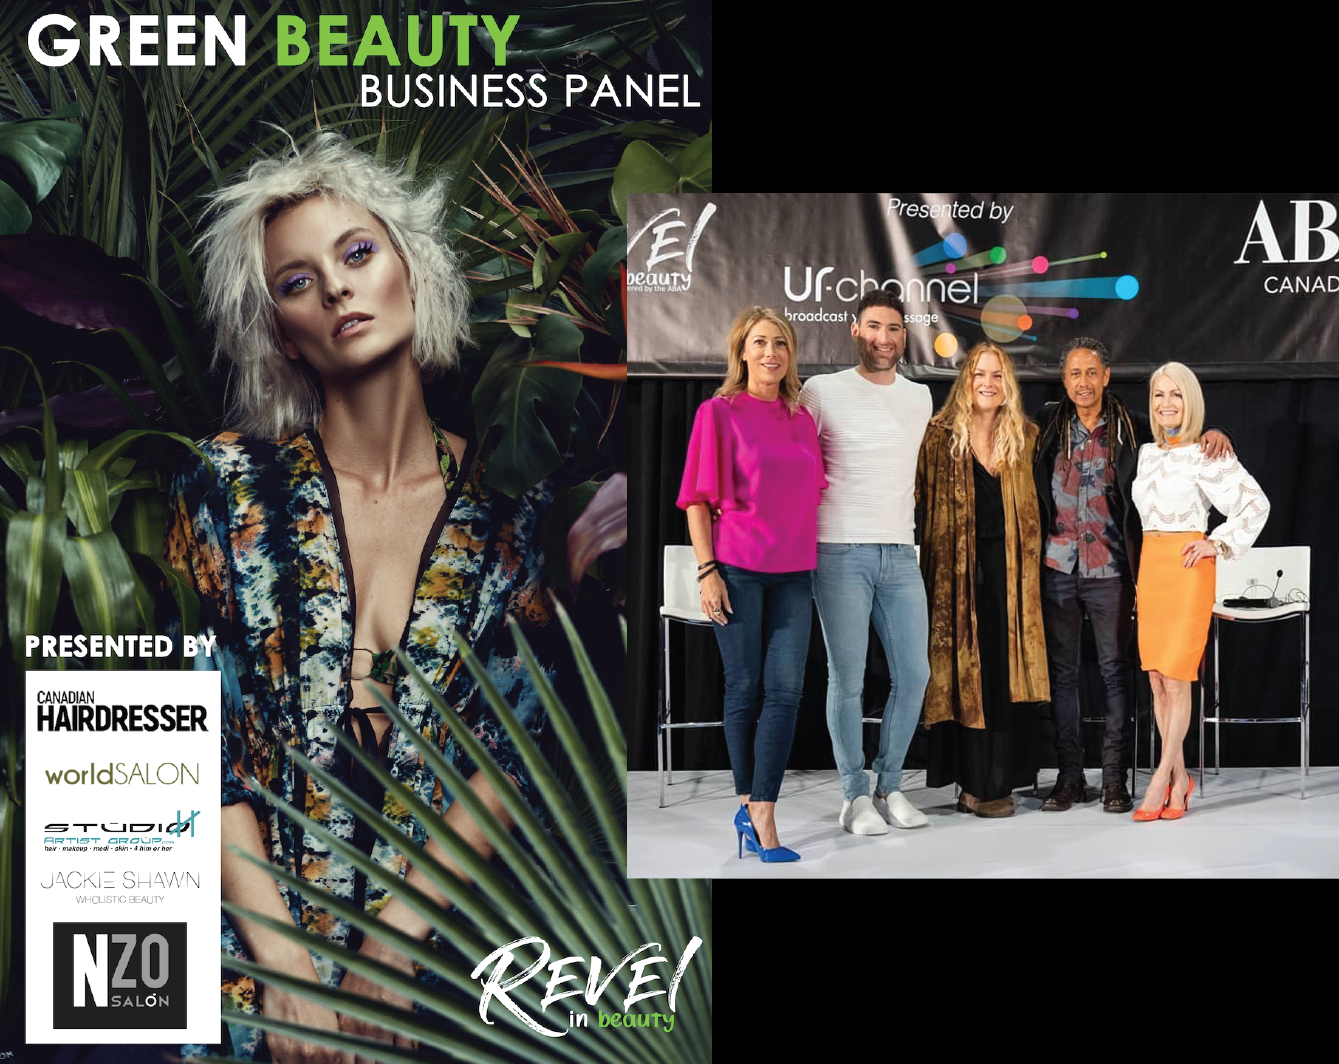 left > right: Host - Cheryl Gushue (Canadian Hairdresser Magazine Editor in Chief and Green Circle Salons Ambassador). Panel - Alex Chabot (NZO Salon), Jackie Shawn (Wholistic Beauty Lab/ WBLab), Brian Phillips (World Salon), Heather Wenman (Studio H Salon)